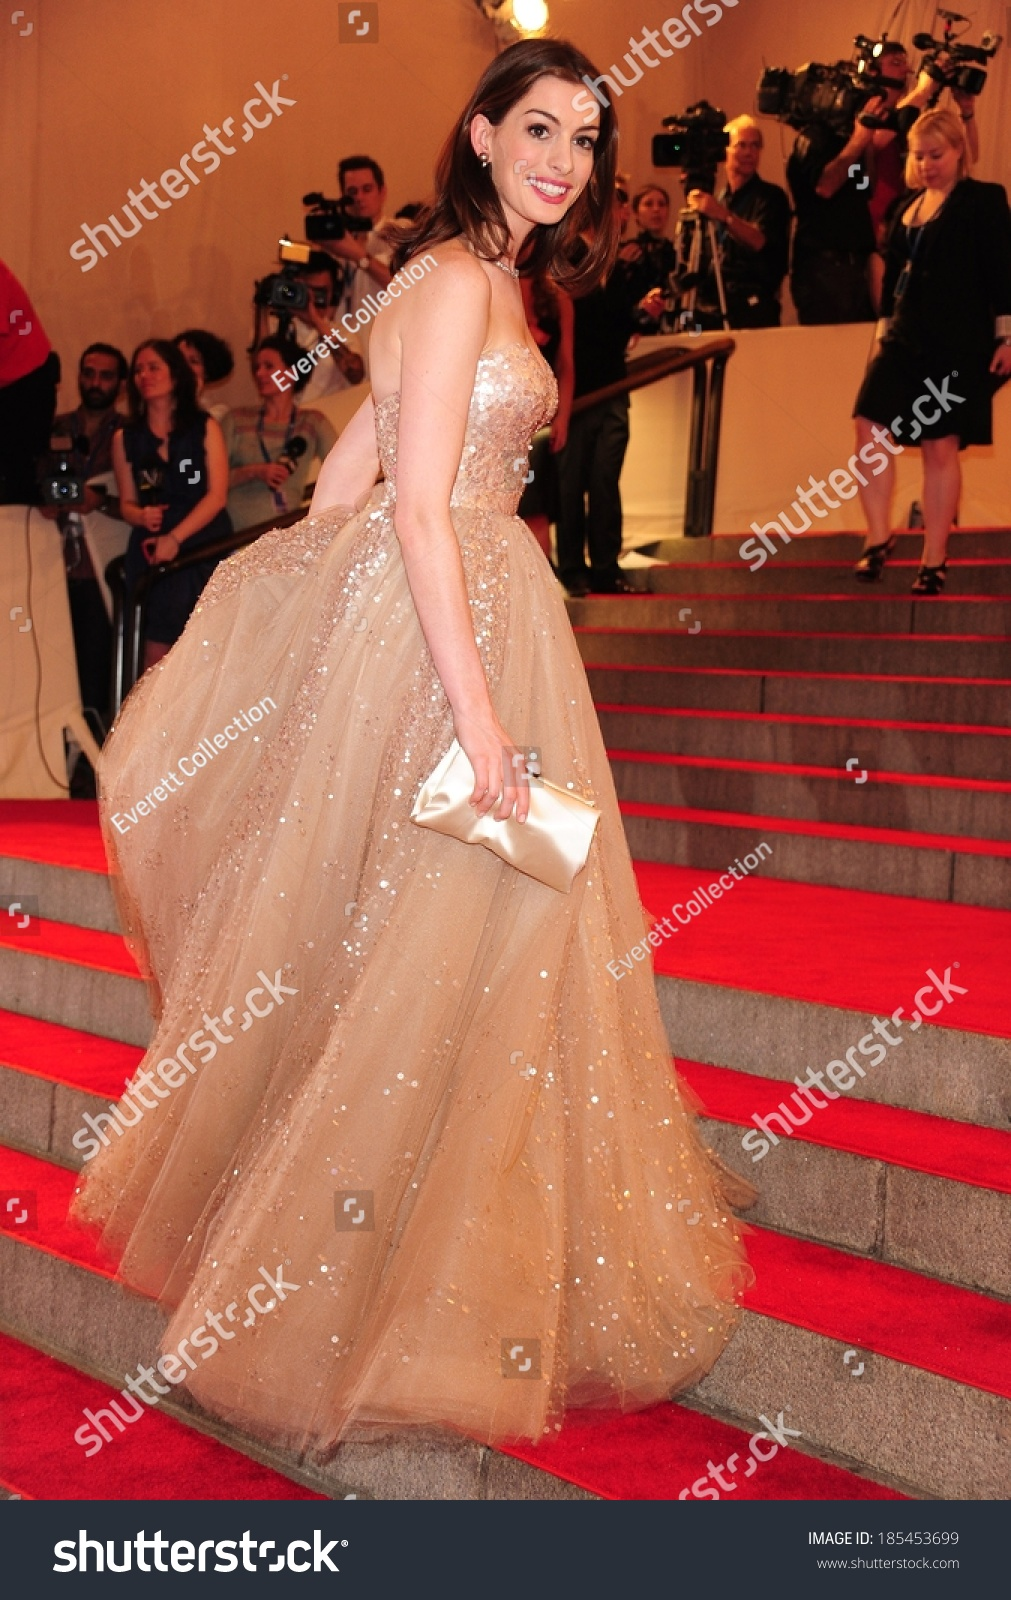 Anne Hathaway Valentino Gown American Woman Stock Photo (Edit Now ...